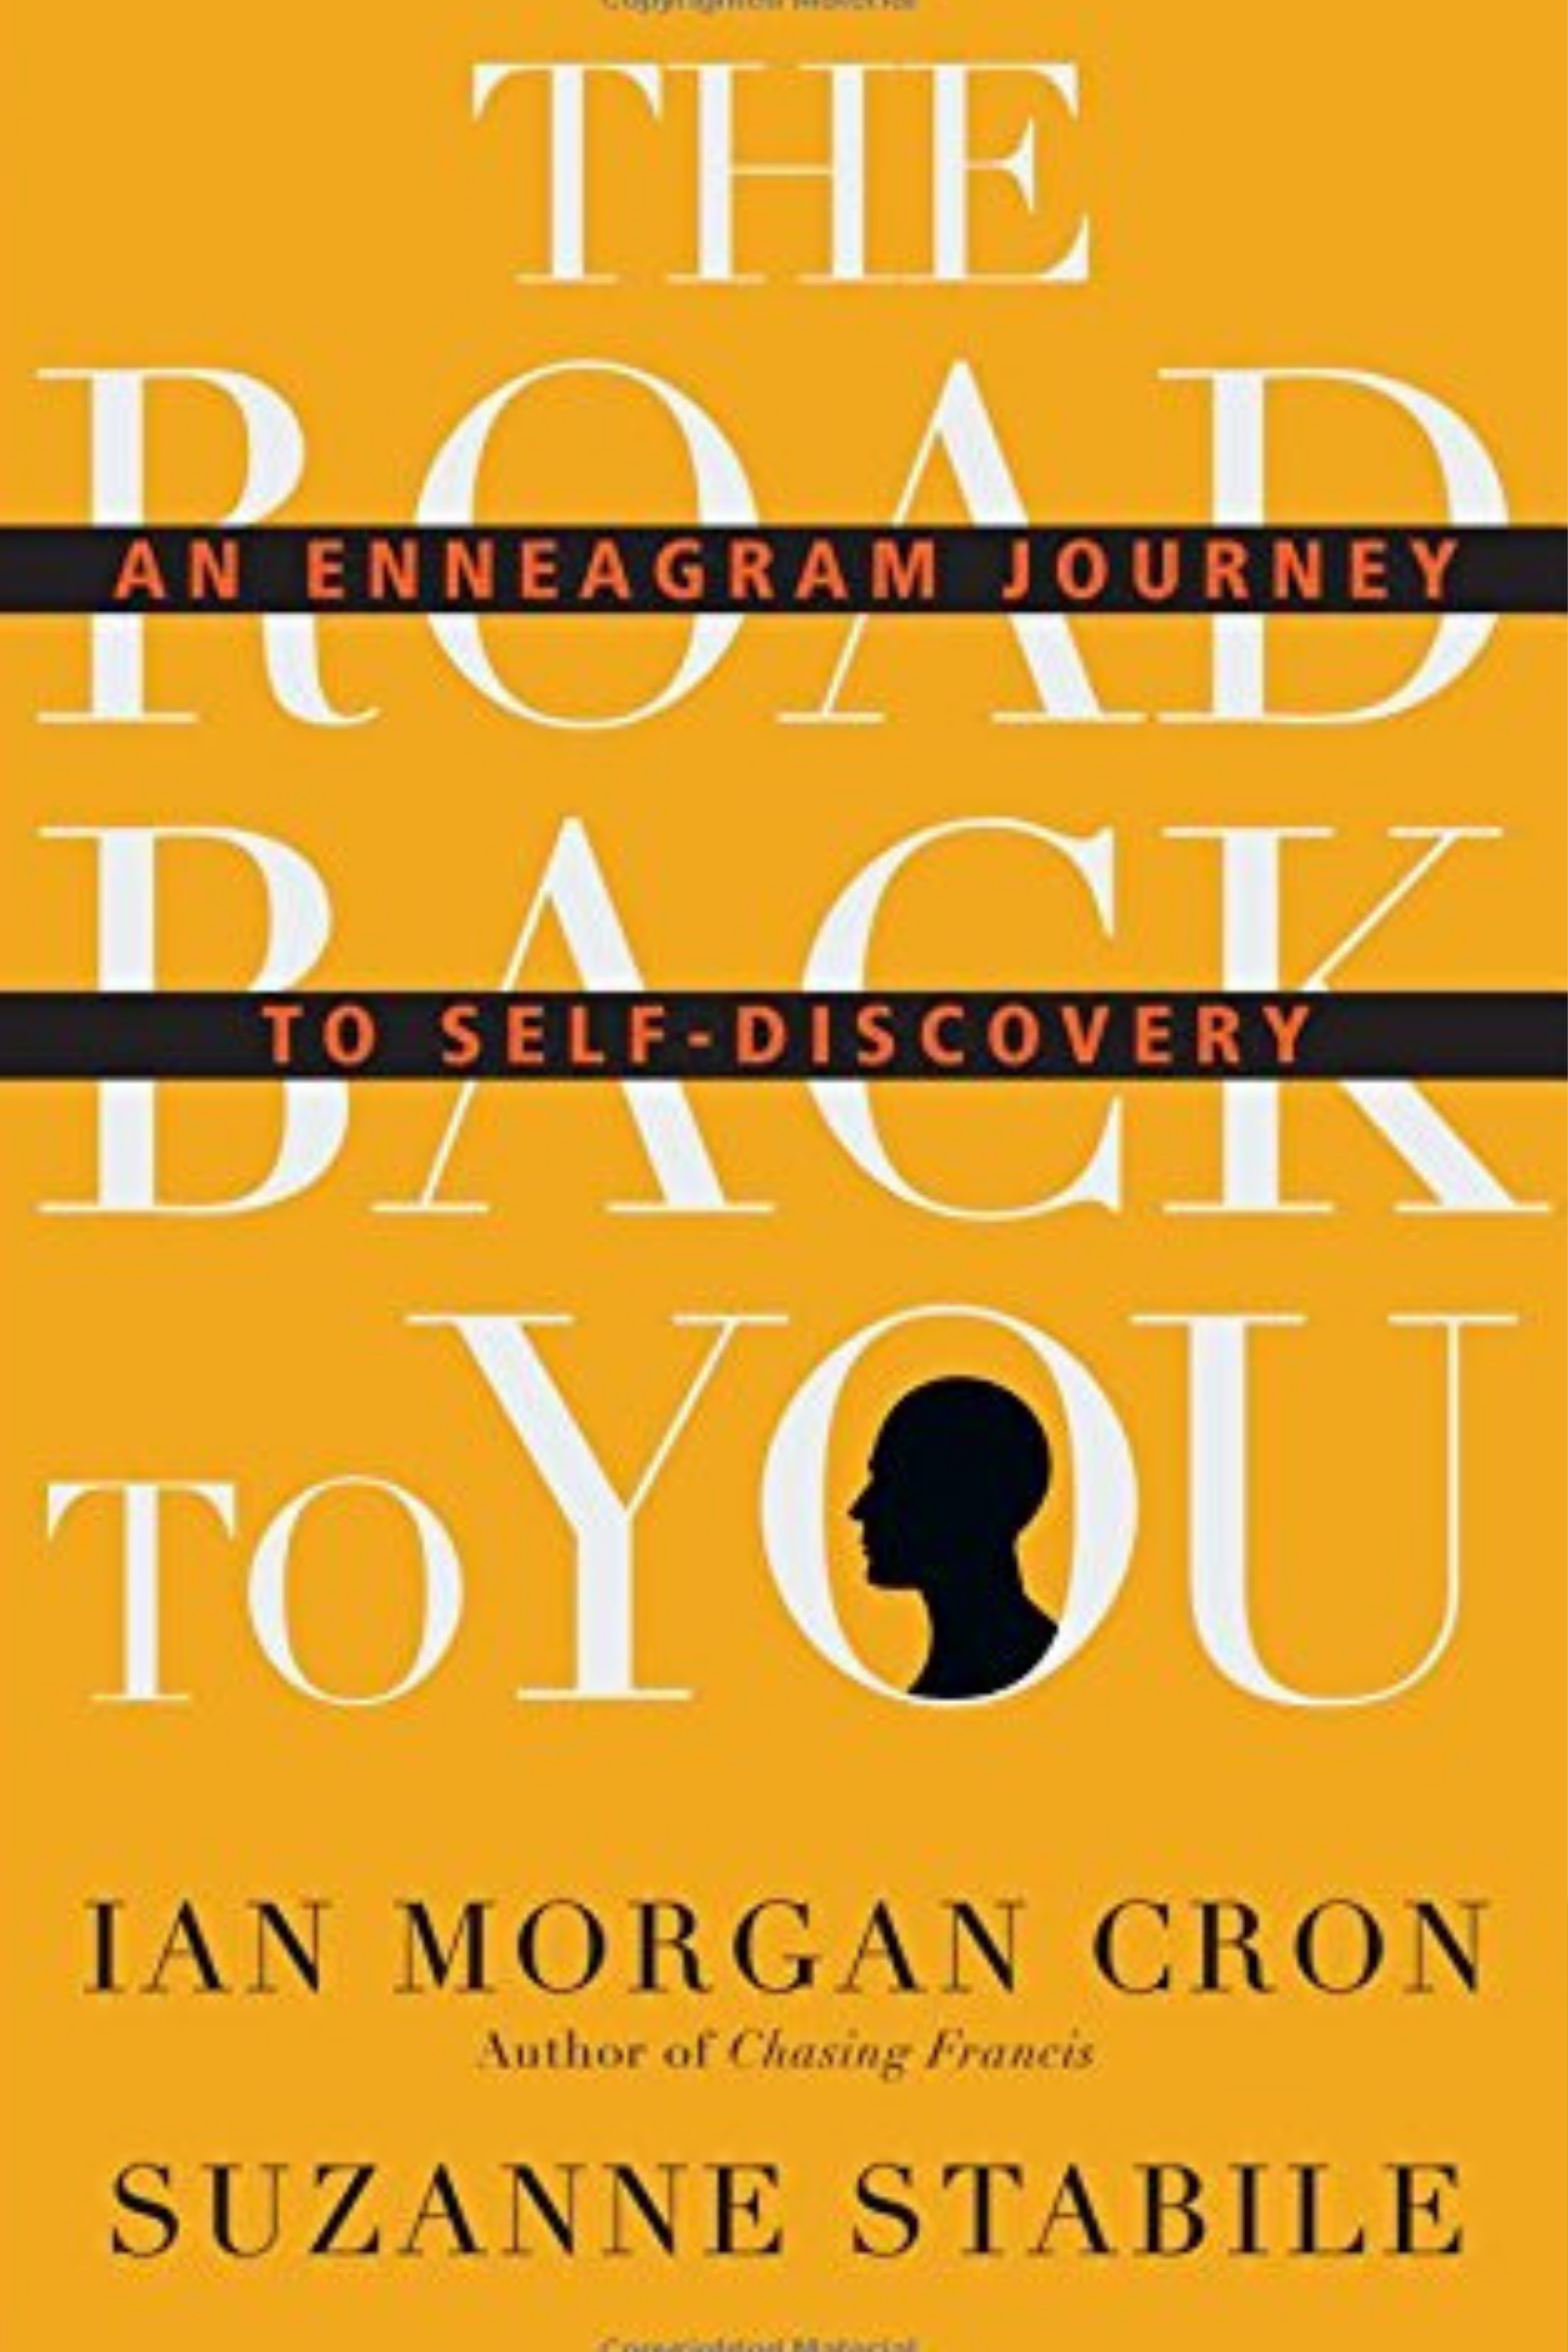 The Road Back to You Ian Morgan Cron Suzanne Stabile Courtney Elmer.png